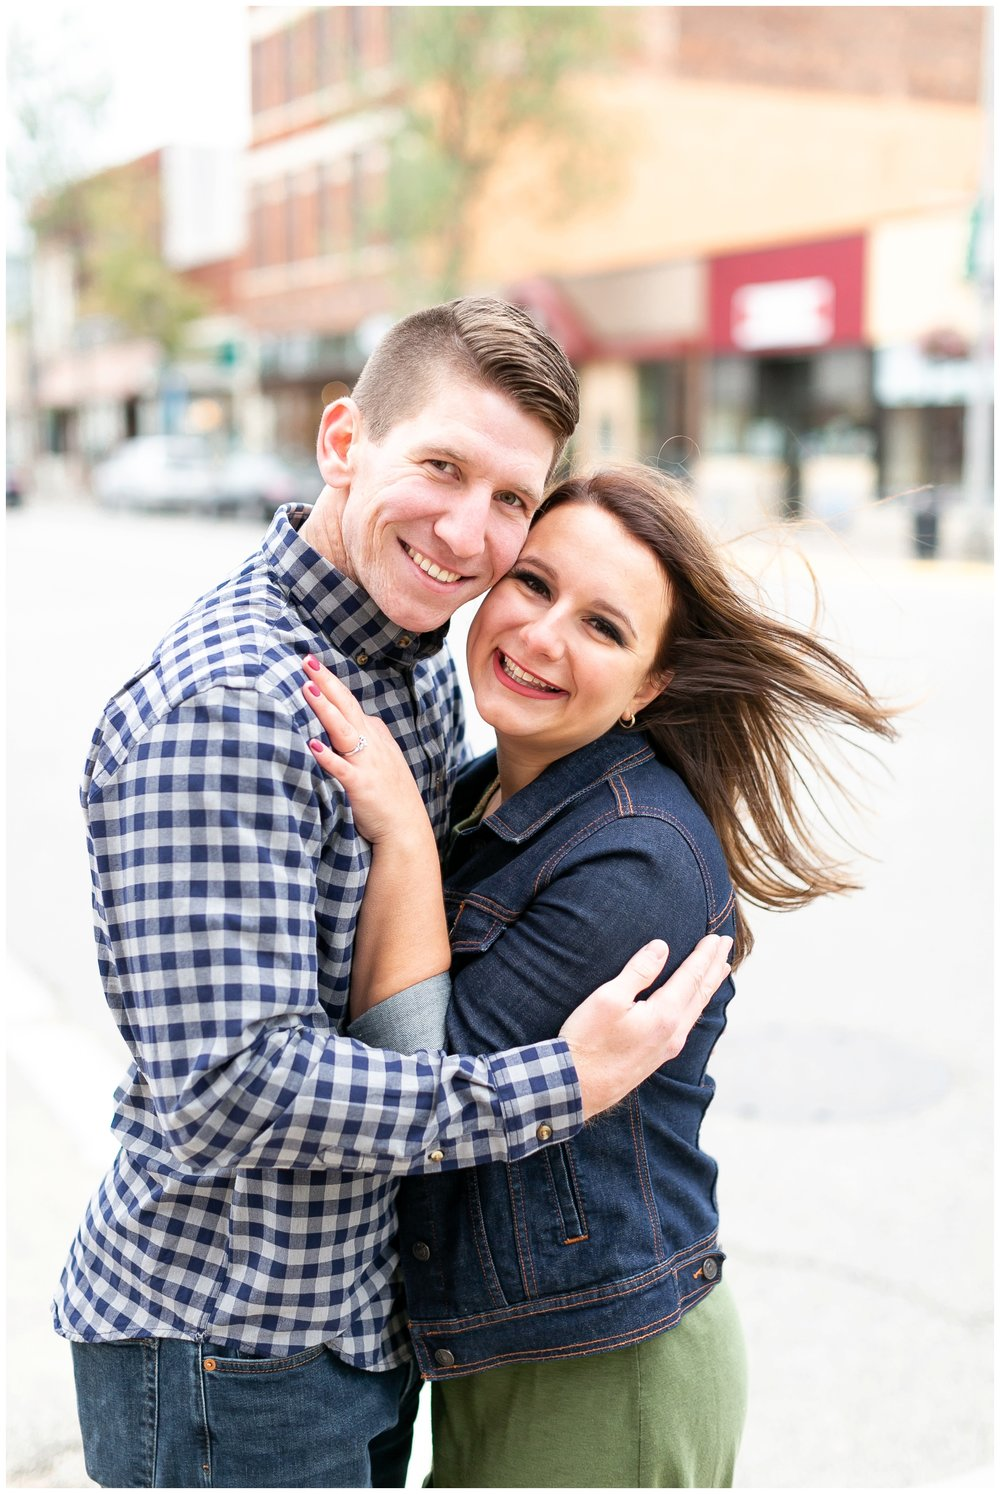 autumn_engagement_session_winona_minnesota_caynay_photo_1773.jpg